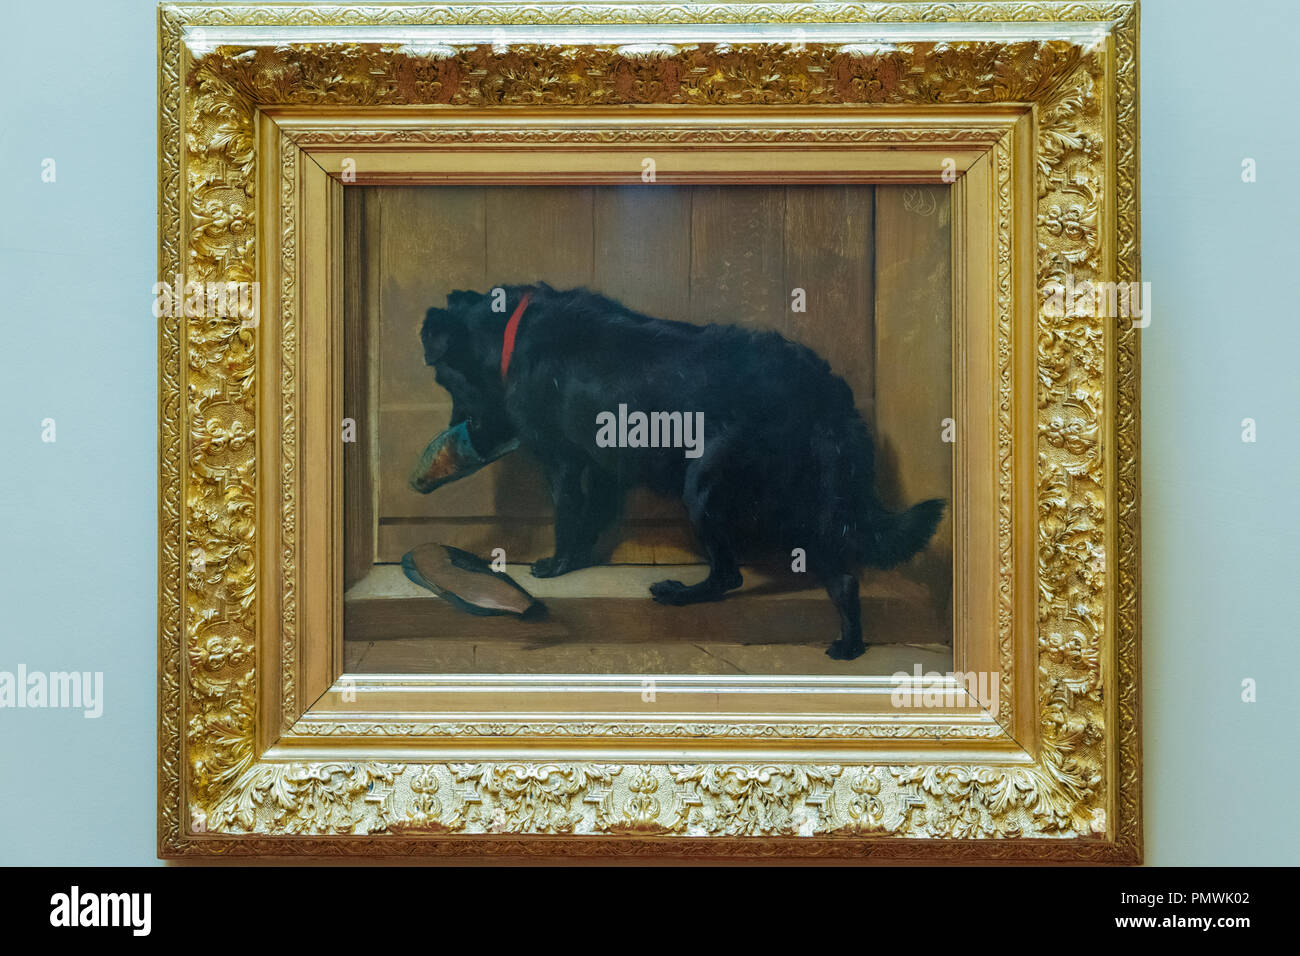 Liverpool Mossley Hill Victorian home Sudley House built 1821 completed George Holt now museum original art collection Dog with Slipper Landseer - Stock Image